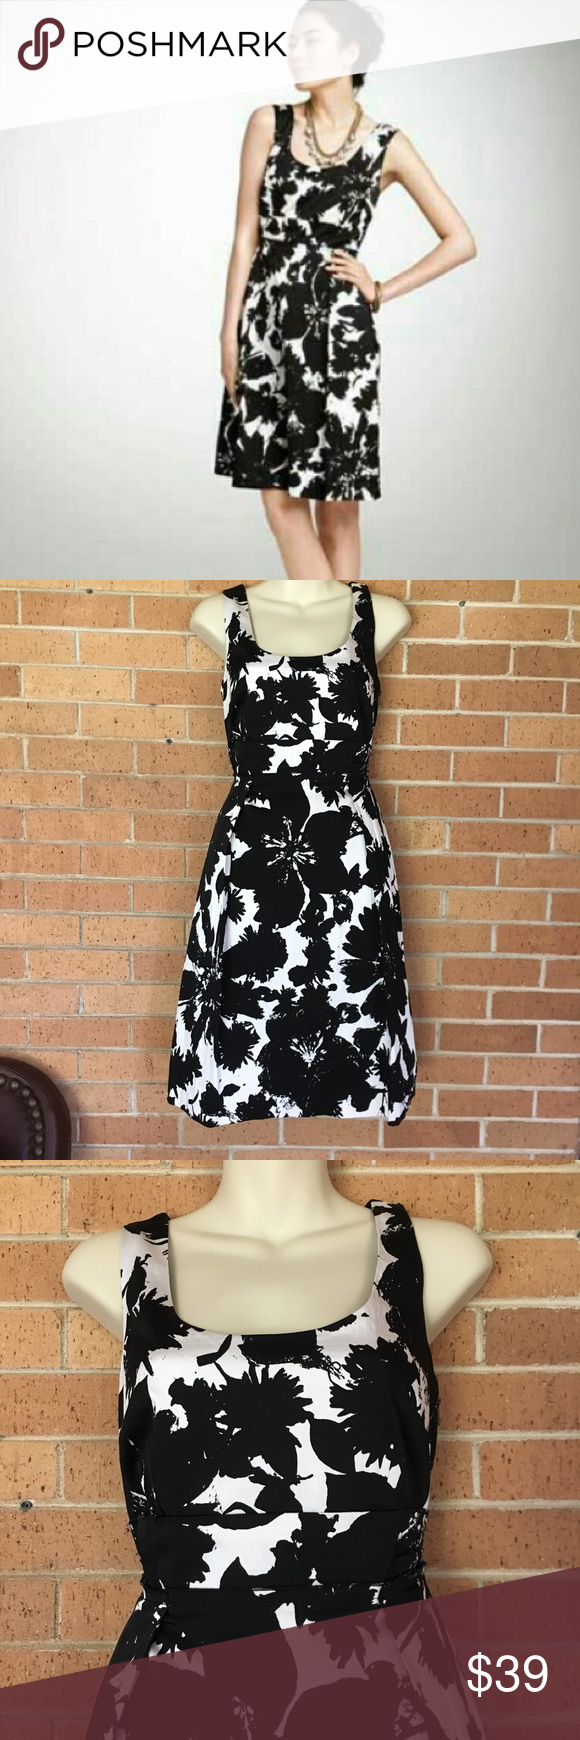 """Ann Taylor Size 4 Dress Black White Floral Ann Taylor Dress Size 4 Luxe feeling fabric  61% Rayon 36% cotton 3% Spandex Side zip  Length 38"""" Armpit to armpit 17"""" REASONABLE OFFERS WILL BE CONSIDERED Ann Taylor Dresses"""